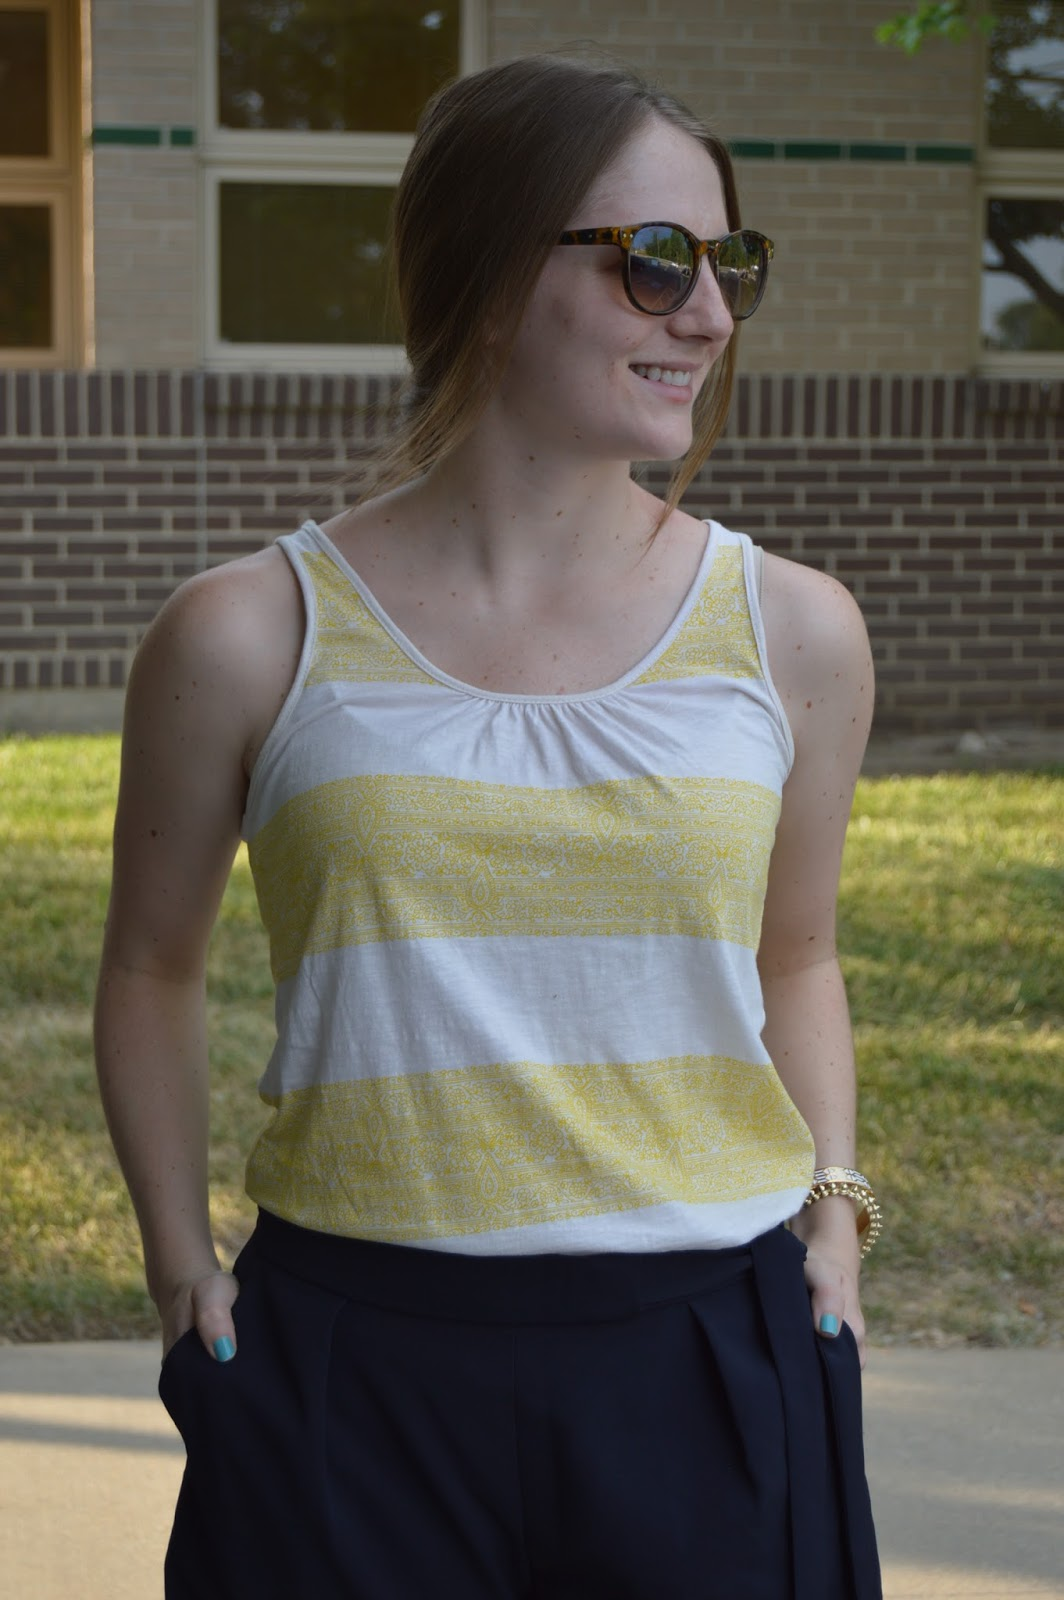 navy and yellow outfit ideas | yellow striped tank top | summer outfit ideas | preppy outfit ideas |  a memory of us | kansas city fashion | summer date night looks | classy navy shorts | summer date night outfit idea with shorts |